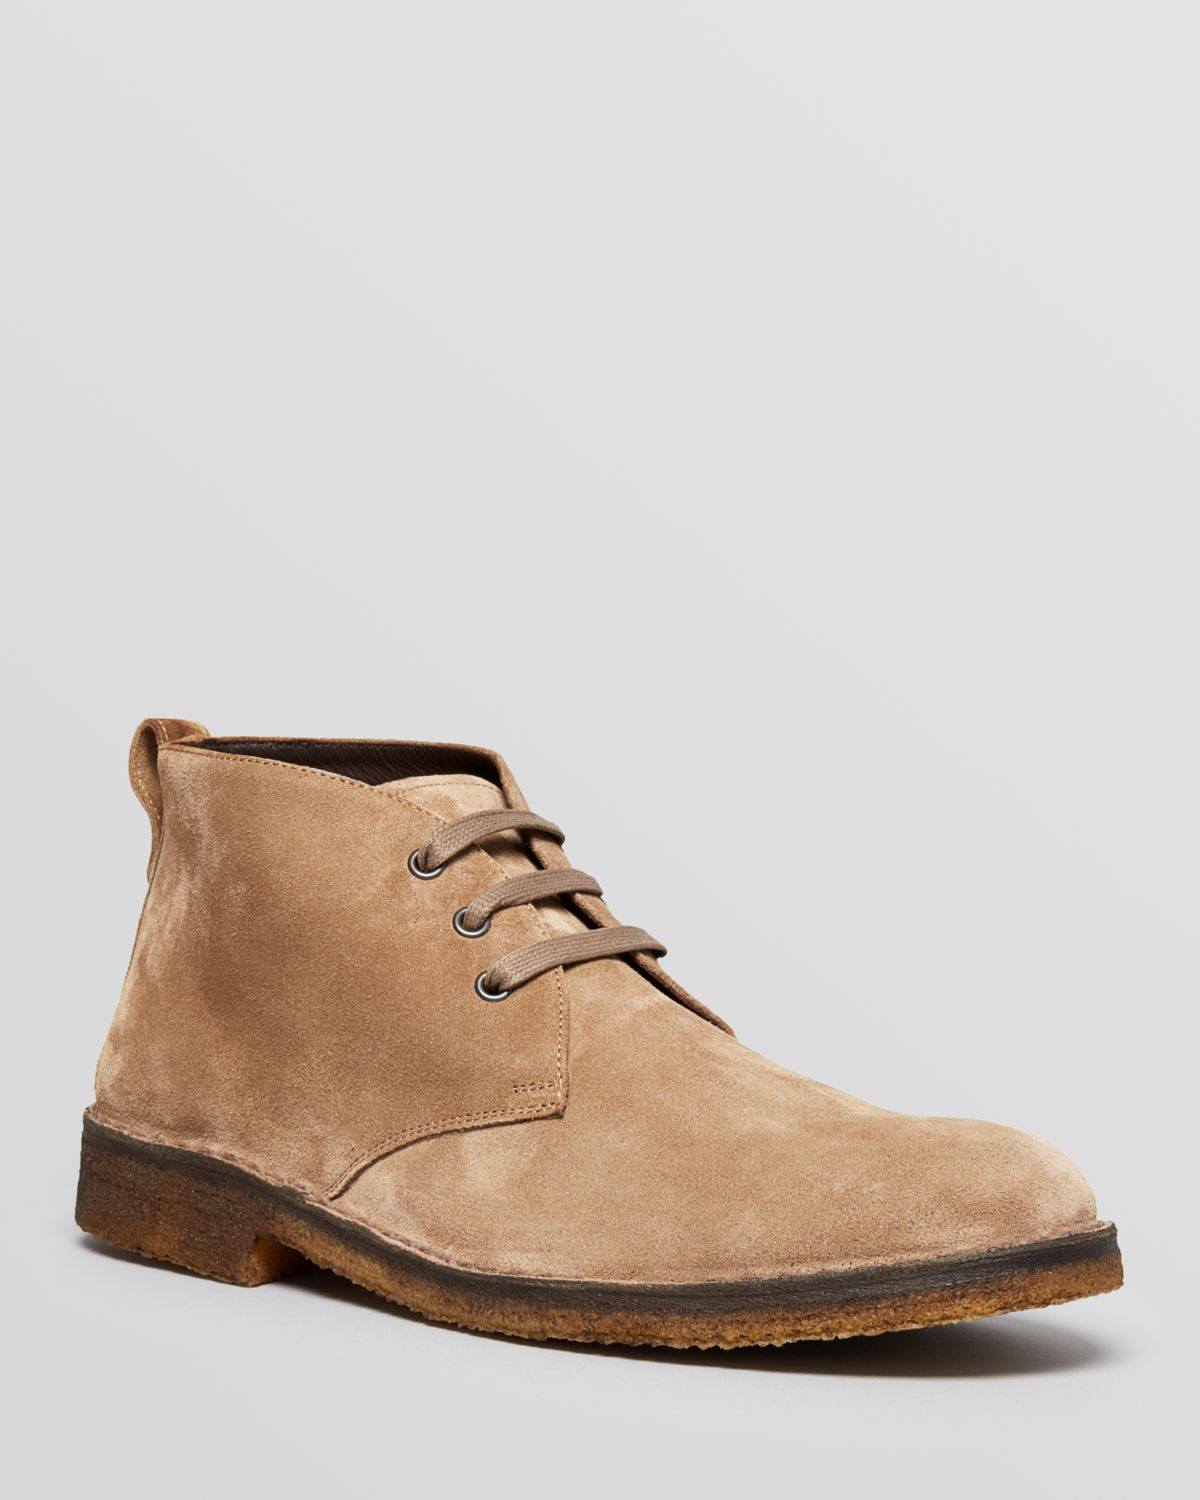 Vince Men's Walden Chukka Boot JUp8HHa